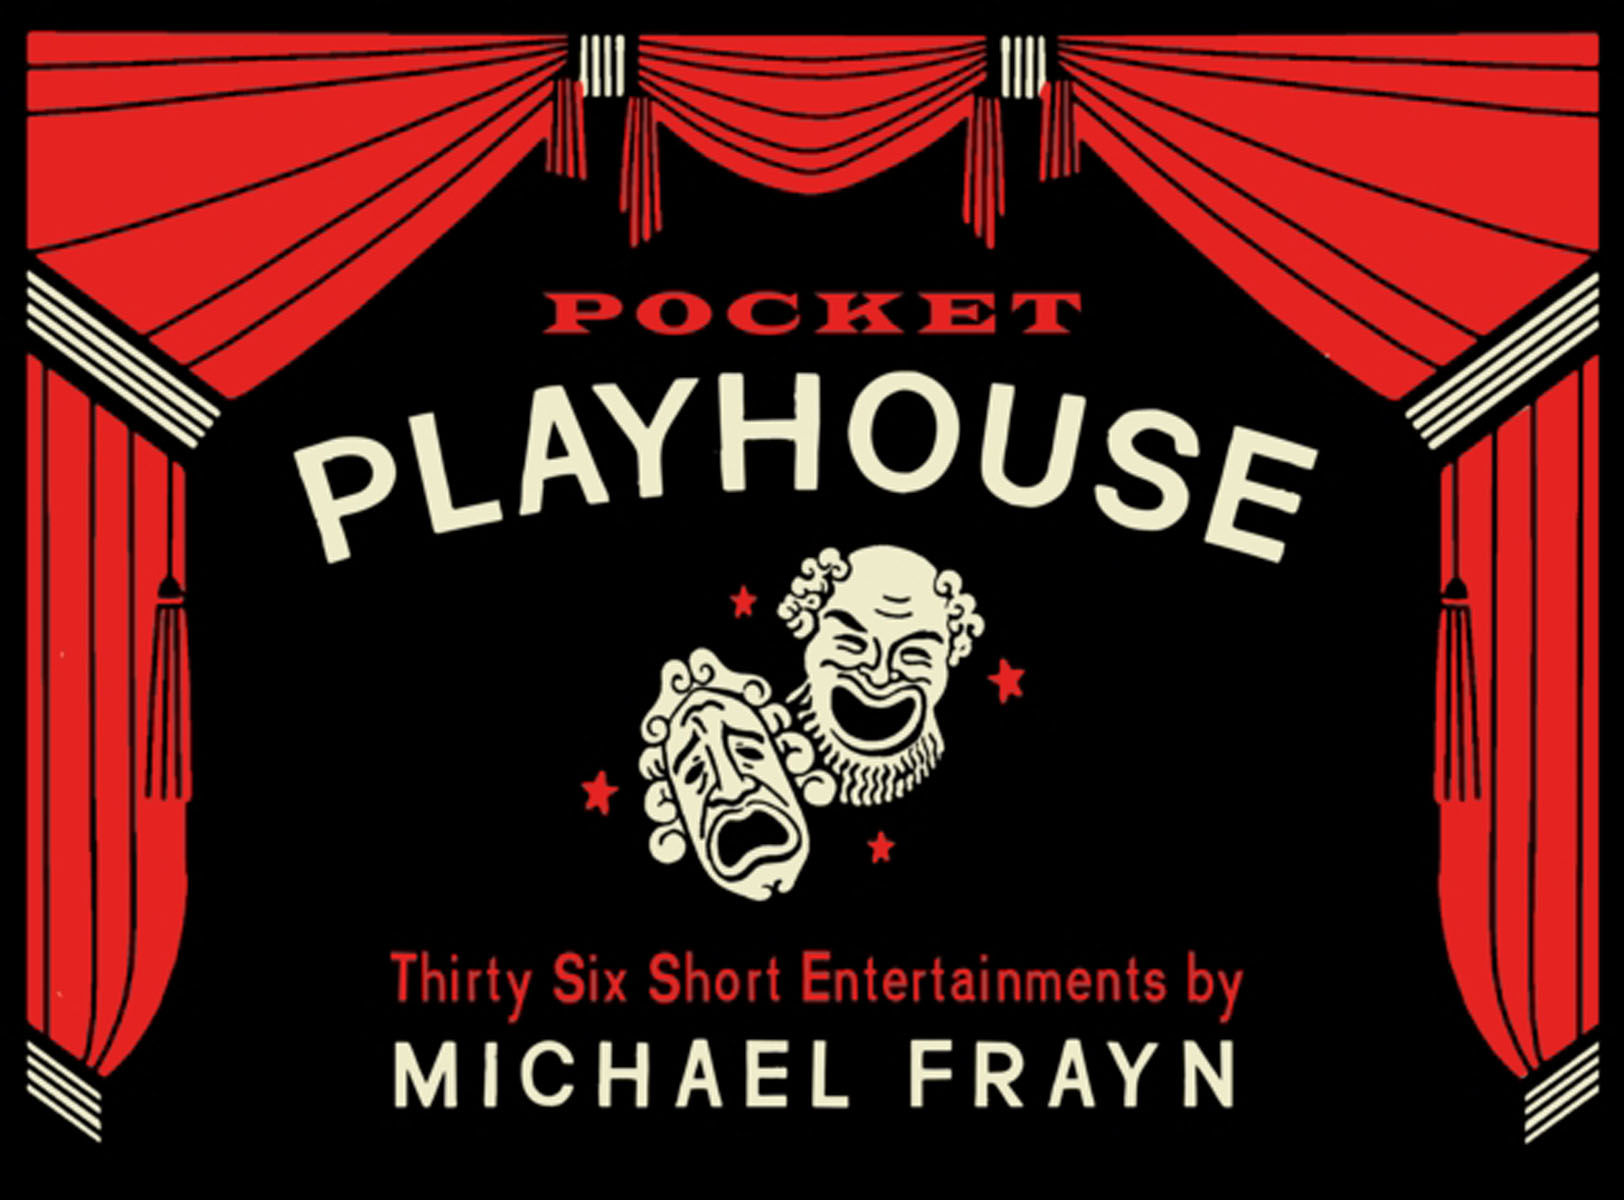 Pocket Playhouse theatre of incest